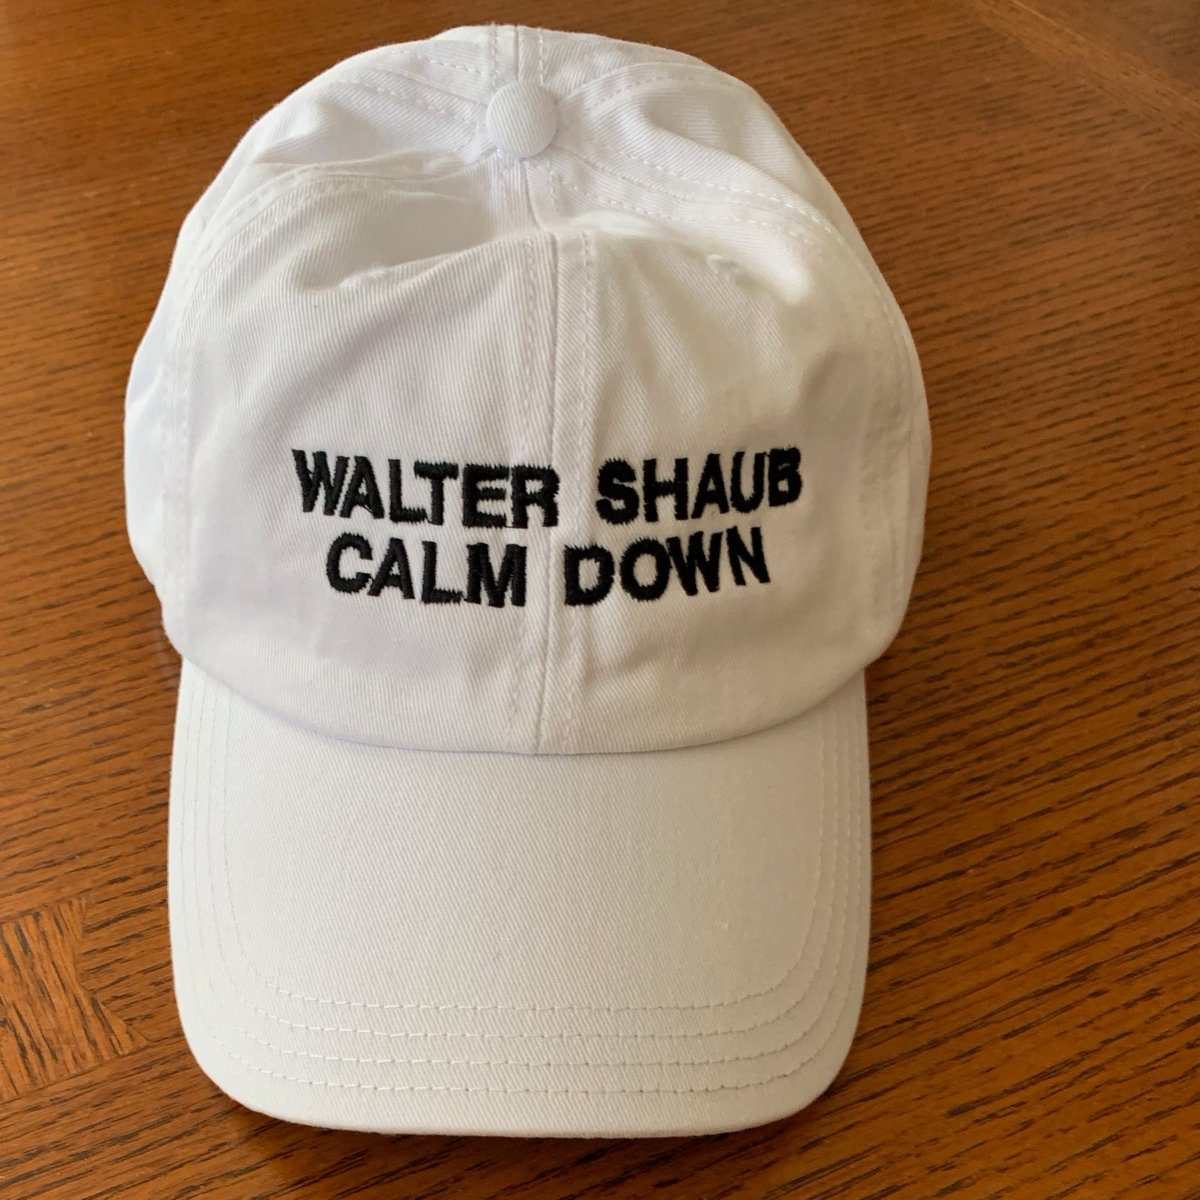 I won't calm down. Not when I have to announce a free newsletter in which I get to delve into government ethics and accountability issues. Sign up here: https://t.co/vffzdOfSqE  (Hat not included. Nor is it for sale. I don't need to run into these things everywhere I go!) https://t.co/MgszC1fso0